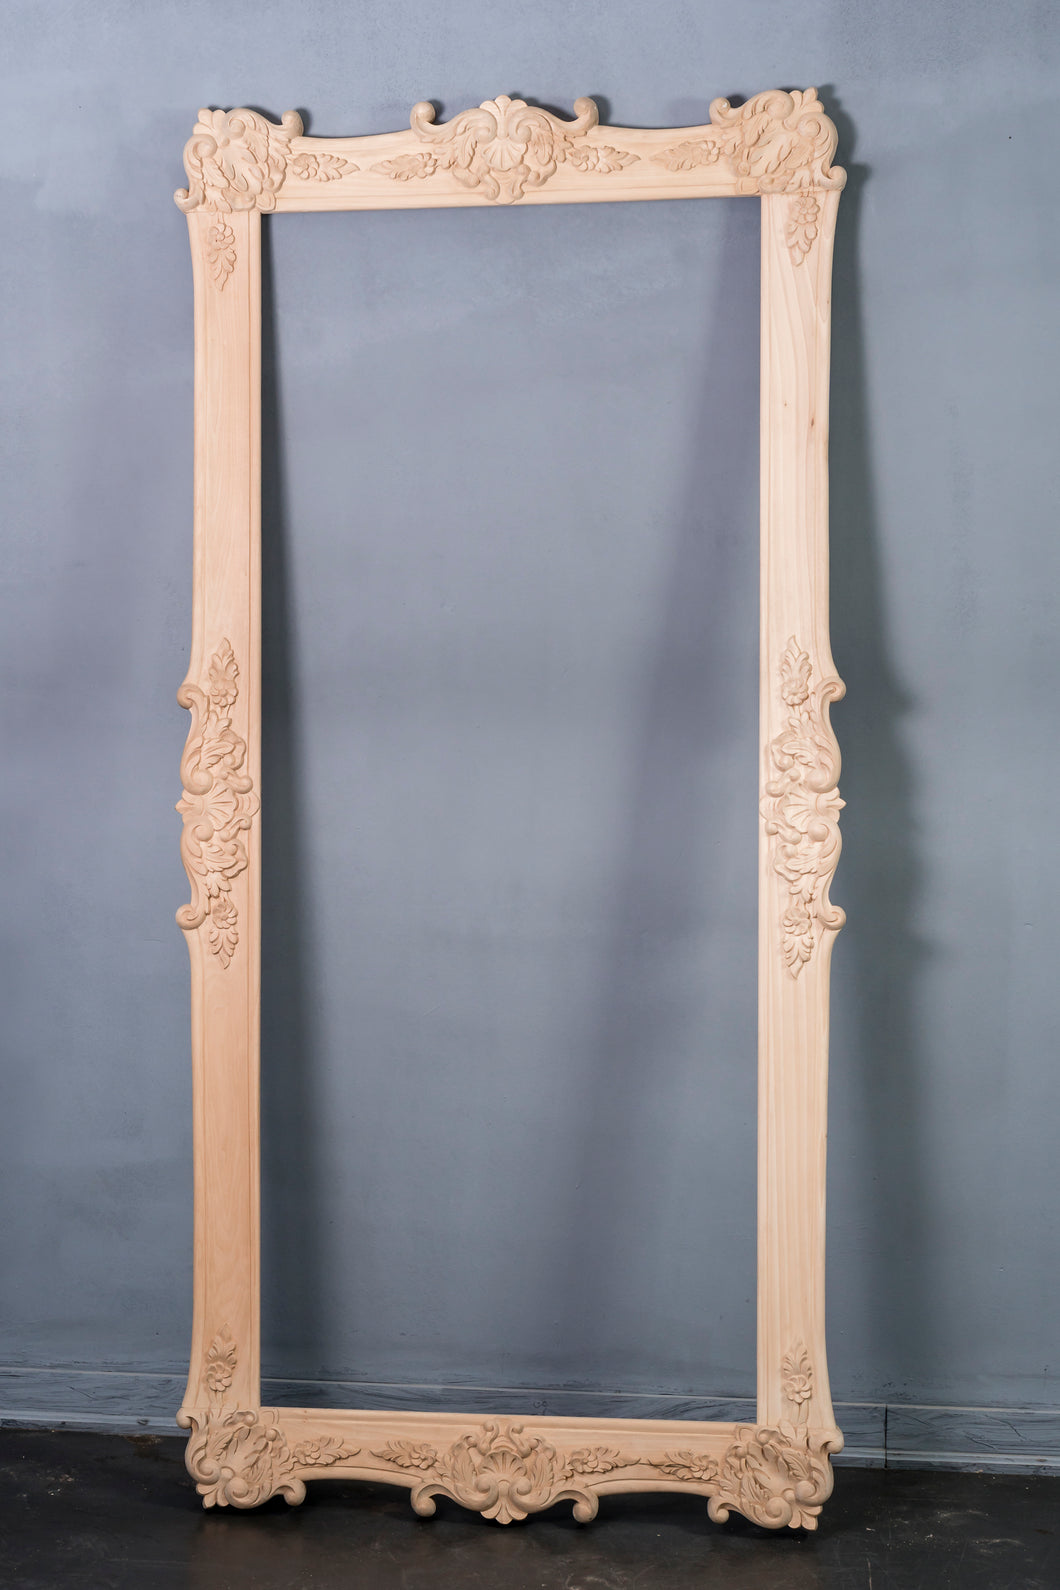 Hand Carved Semi-finished Mirror/Picture Frame